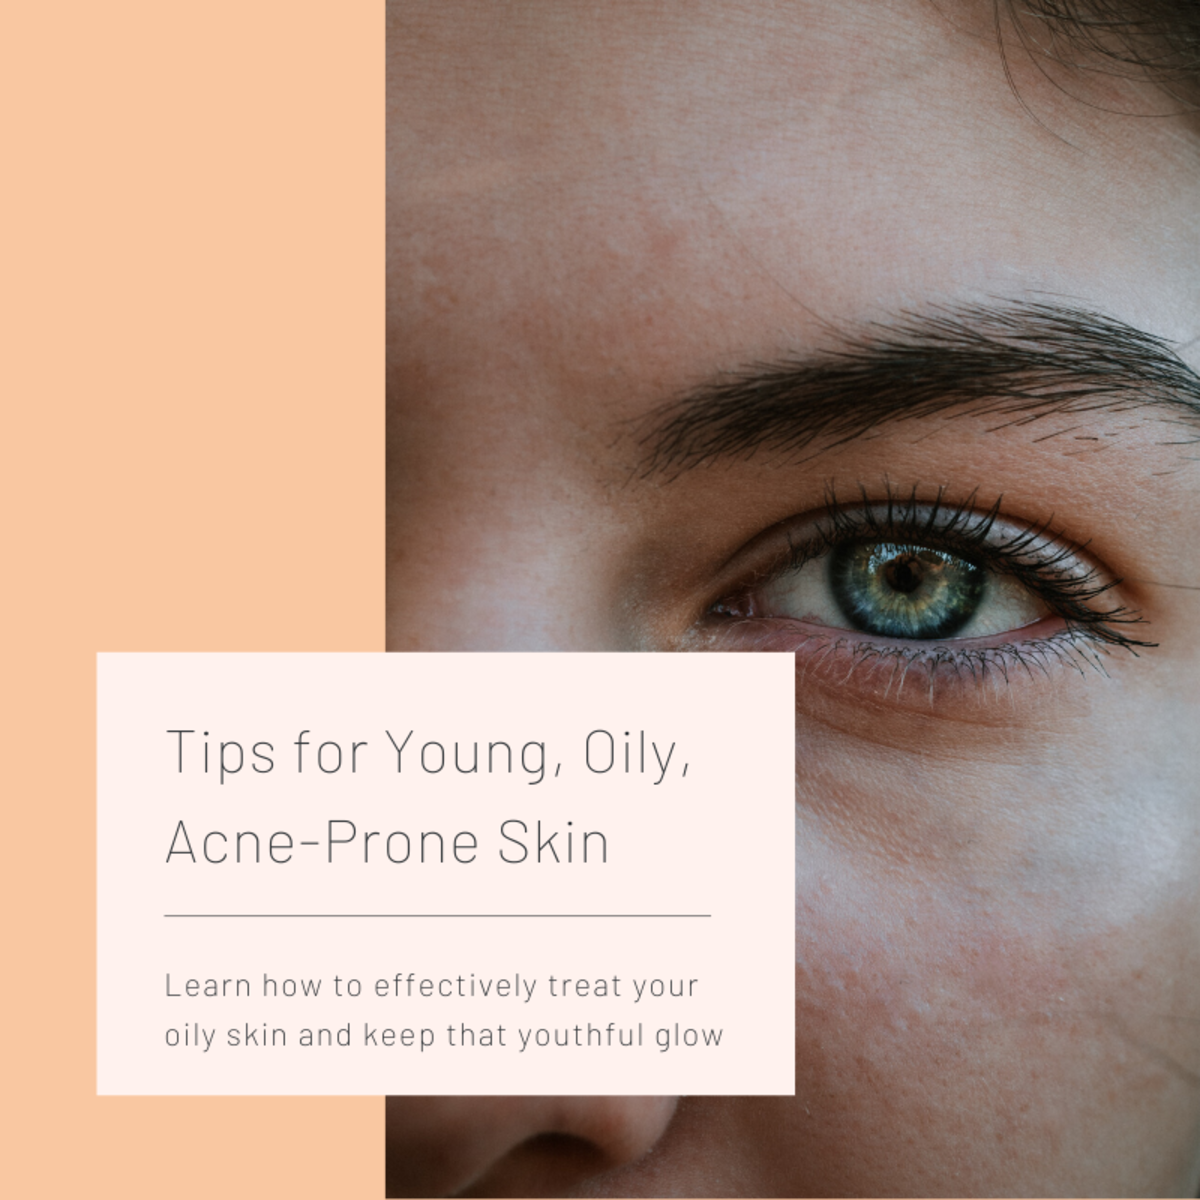 This article will provide some tips and guidance on how to effectively treat your oily, acne-prone skin.